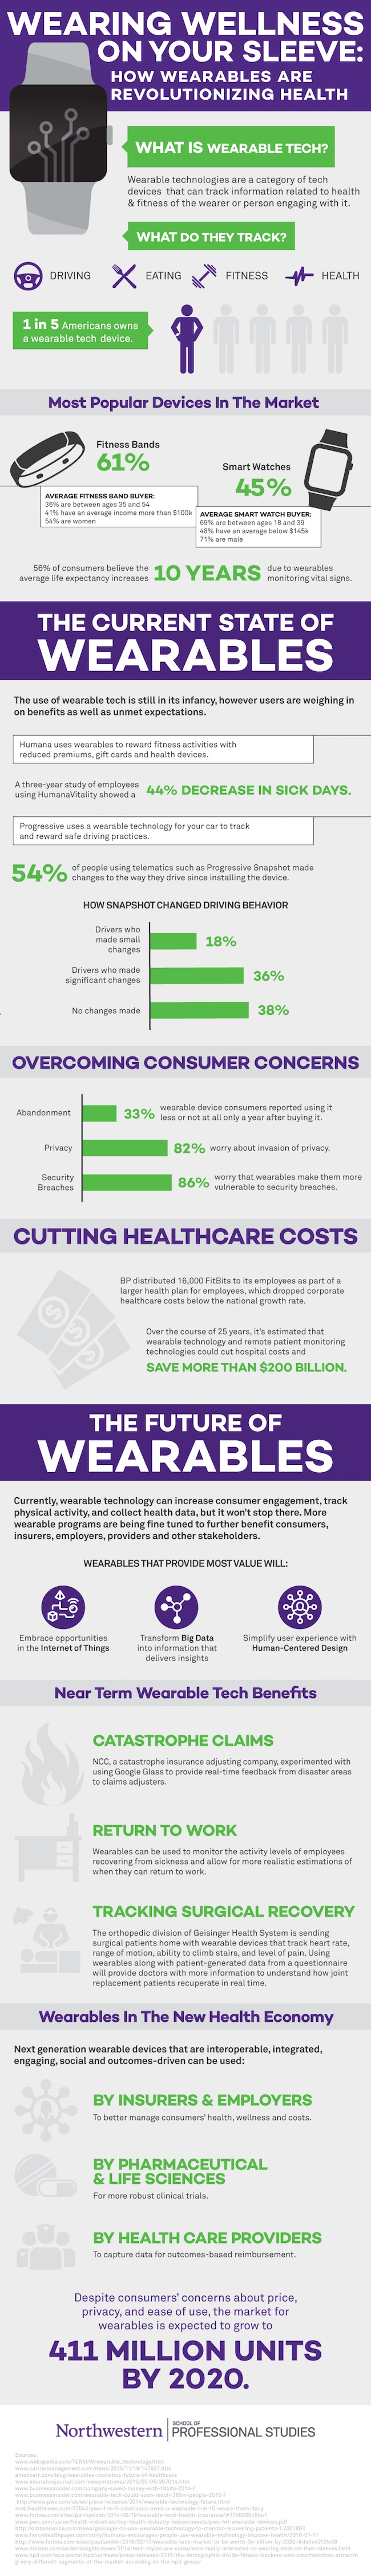 Infographie : Wearing Wellness on Your Sleeve